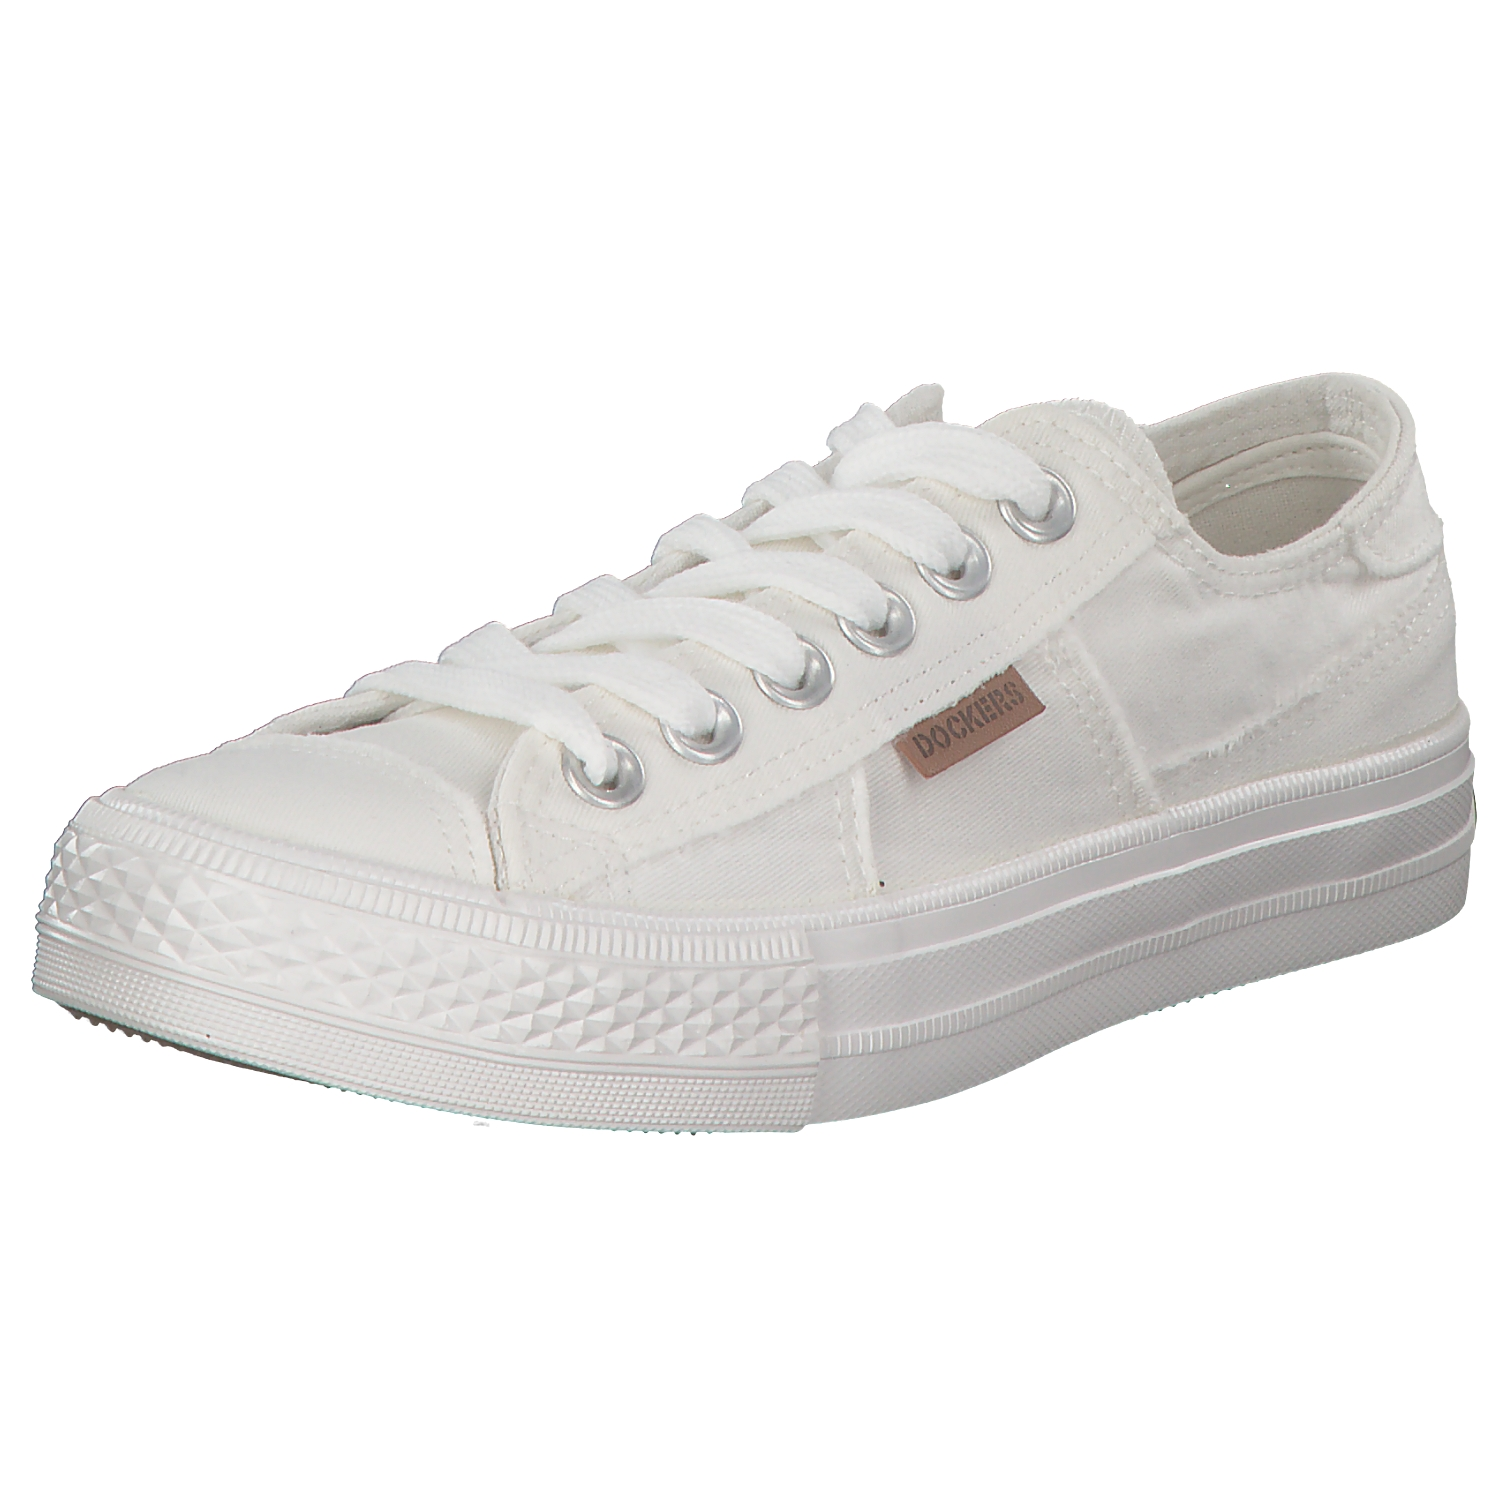 Dockers Women's Sneakers Casual shoes Summer shoes 40th201-790500 White New